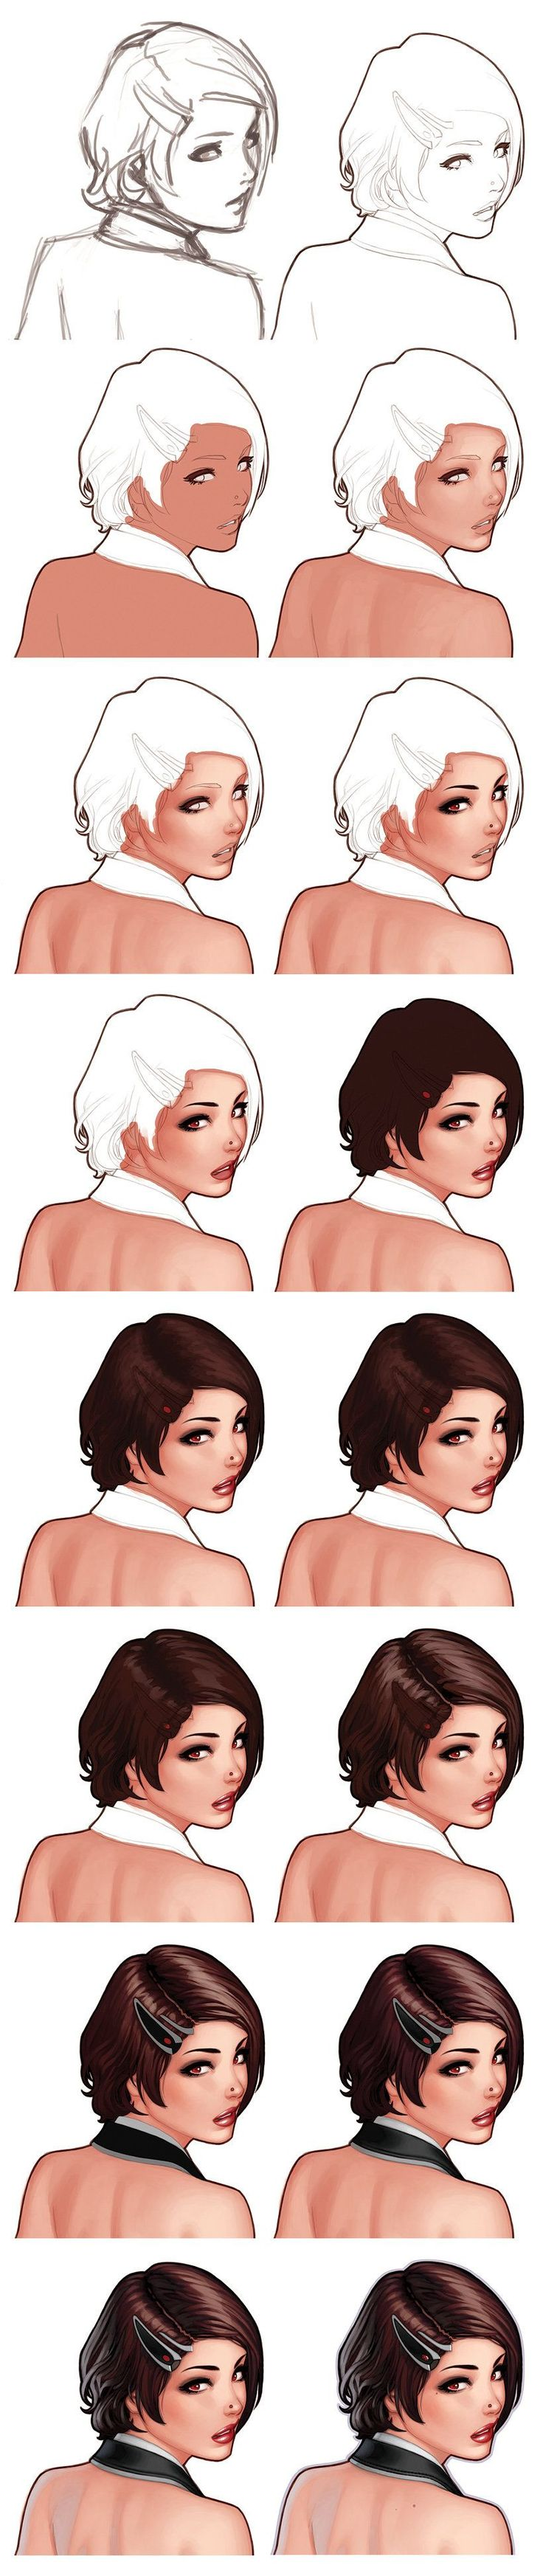 The Face Of Eva - Step By Step (2009) Ive gotta say, her face was definitely the most challenging feature of her. Improvising her facial features really gave me a better understanding of how light ...